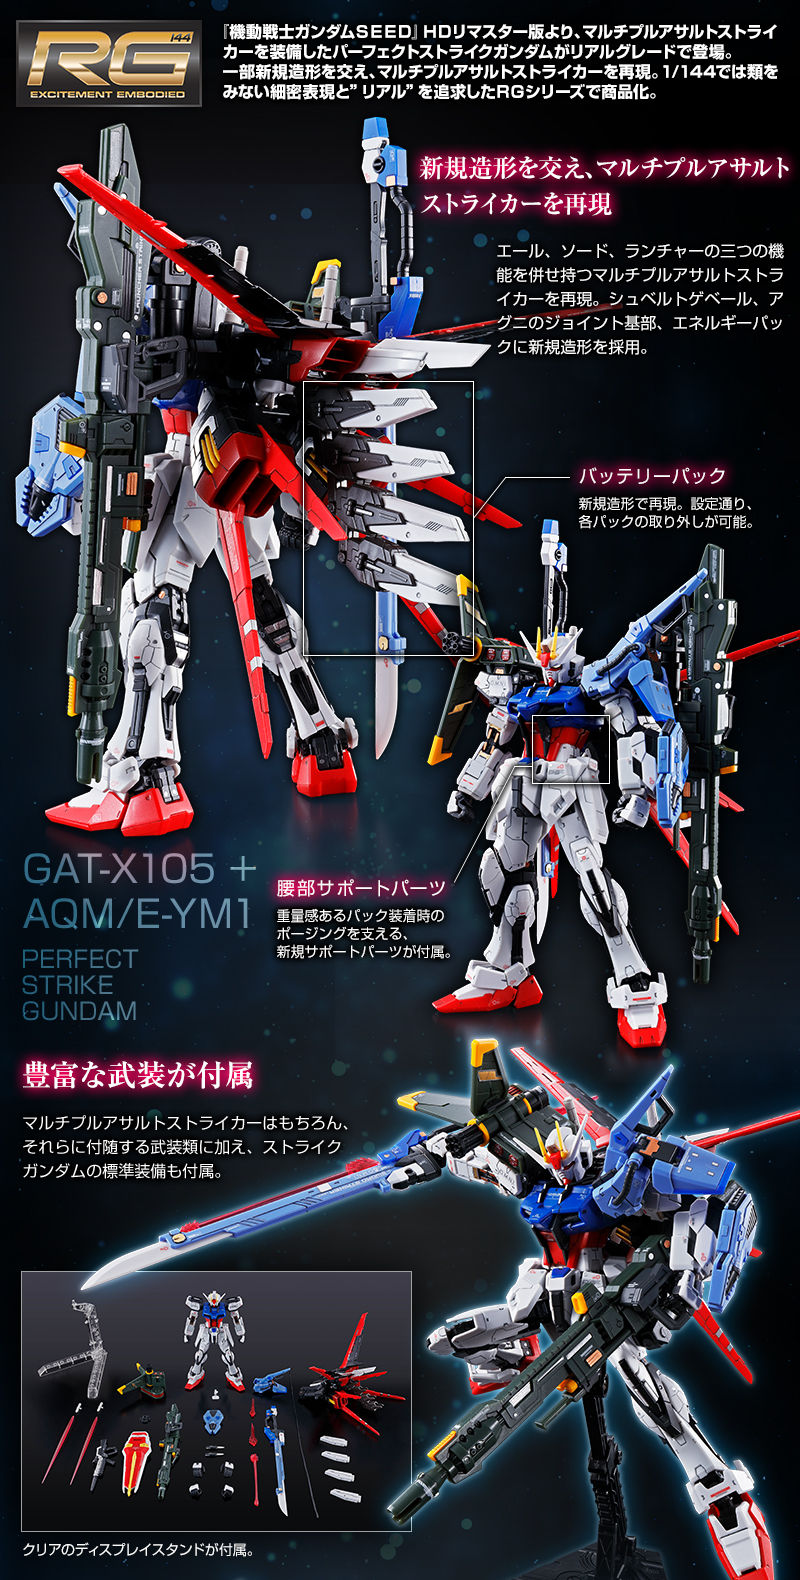 P-Bandai RG 1/144 PERFECT STRIKE GUNDAM. Full official images, info